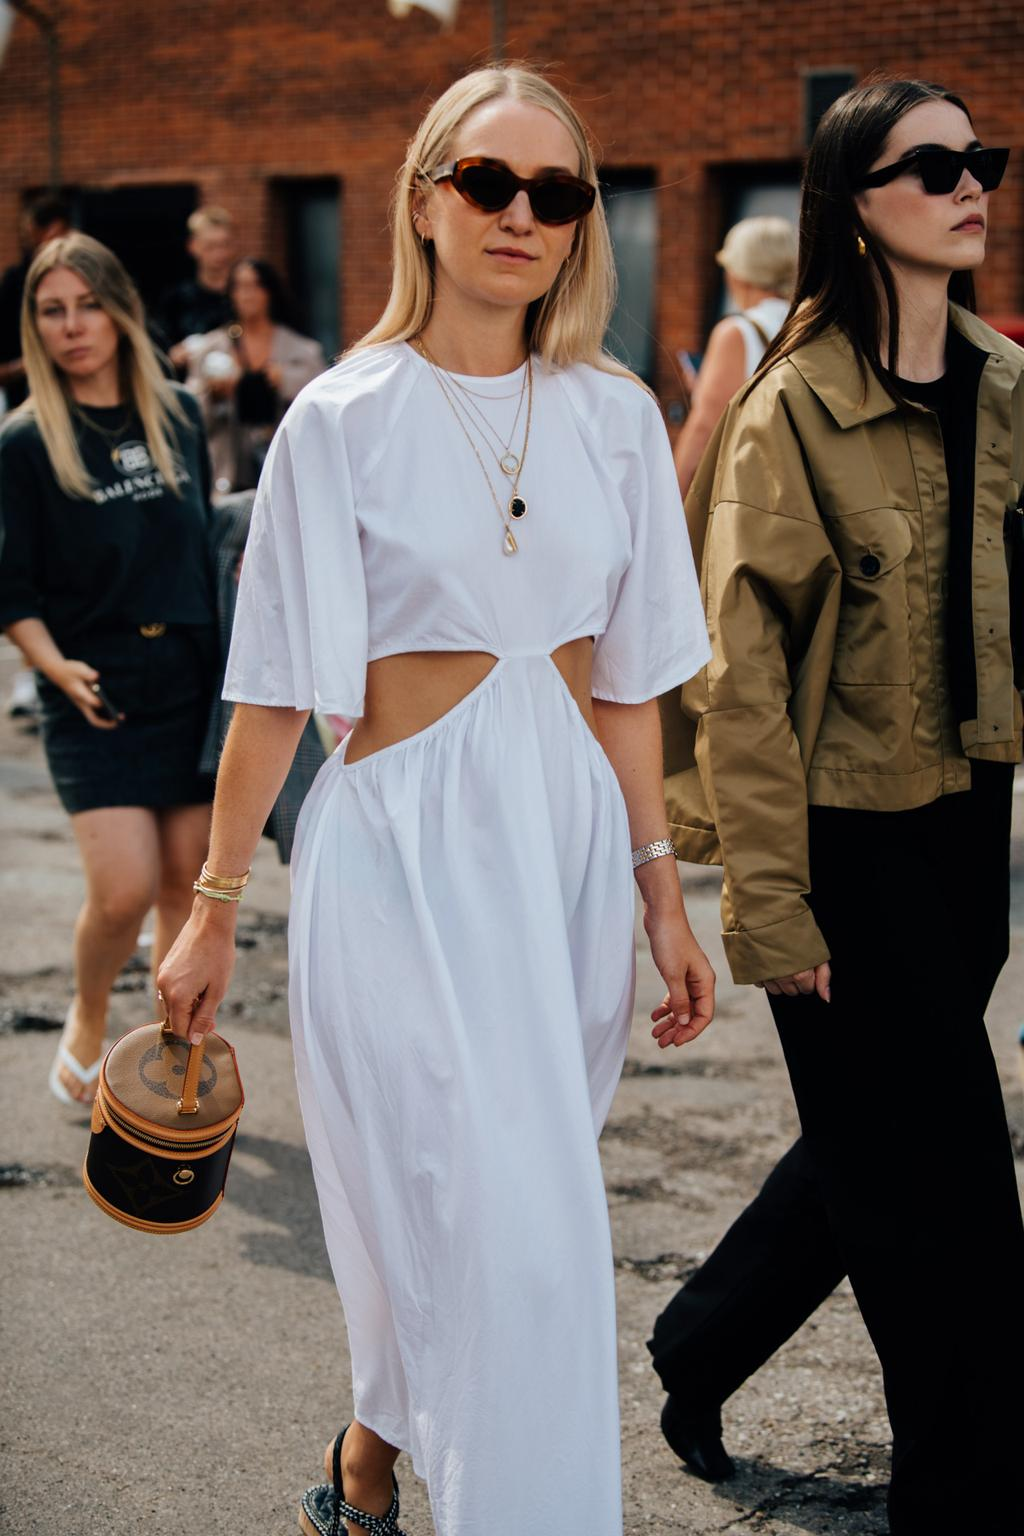 25 of the Coolest Cutout Dresses for Spring and Summer — White Side Cut Out Dress Trend 2021